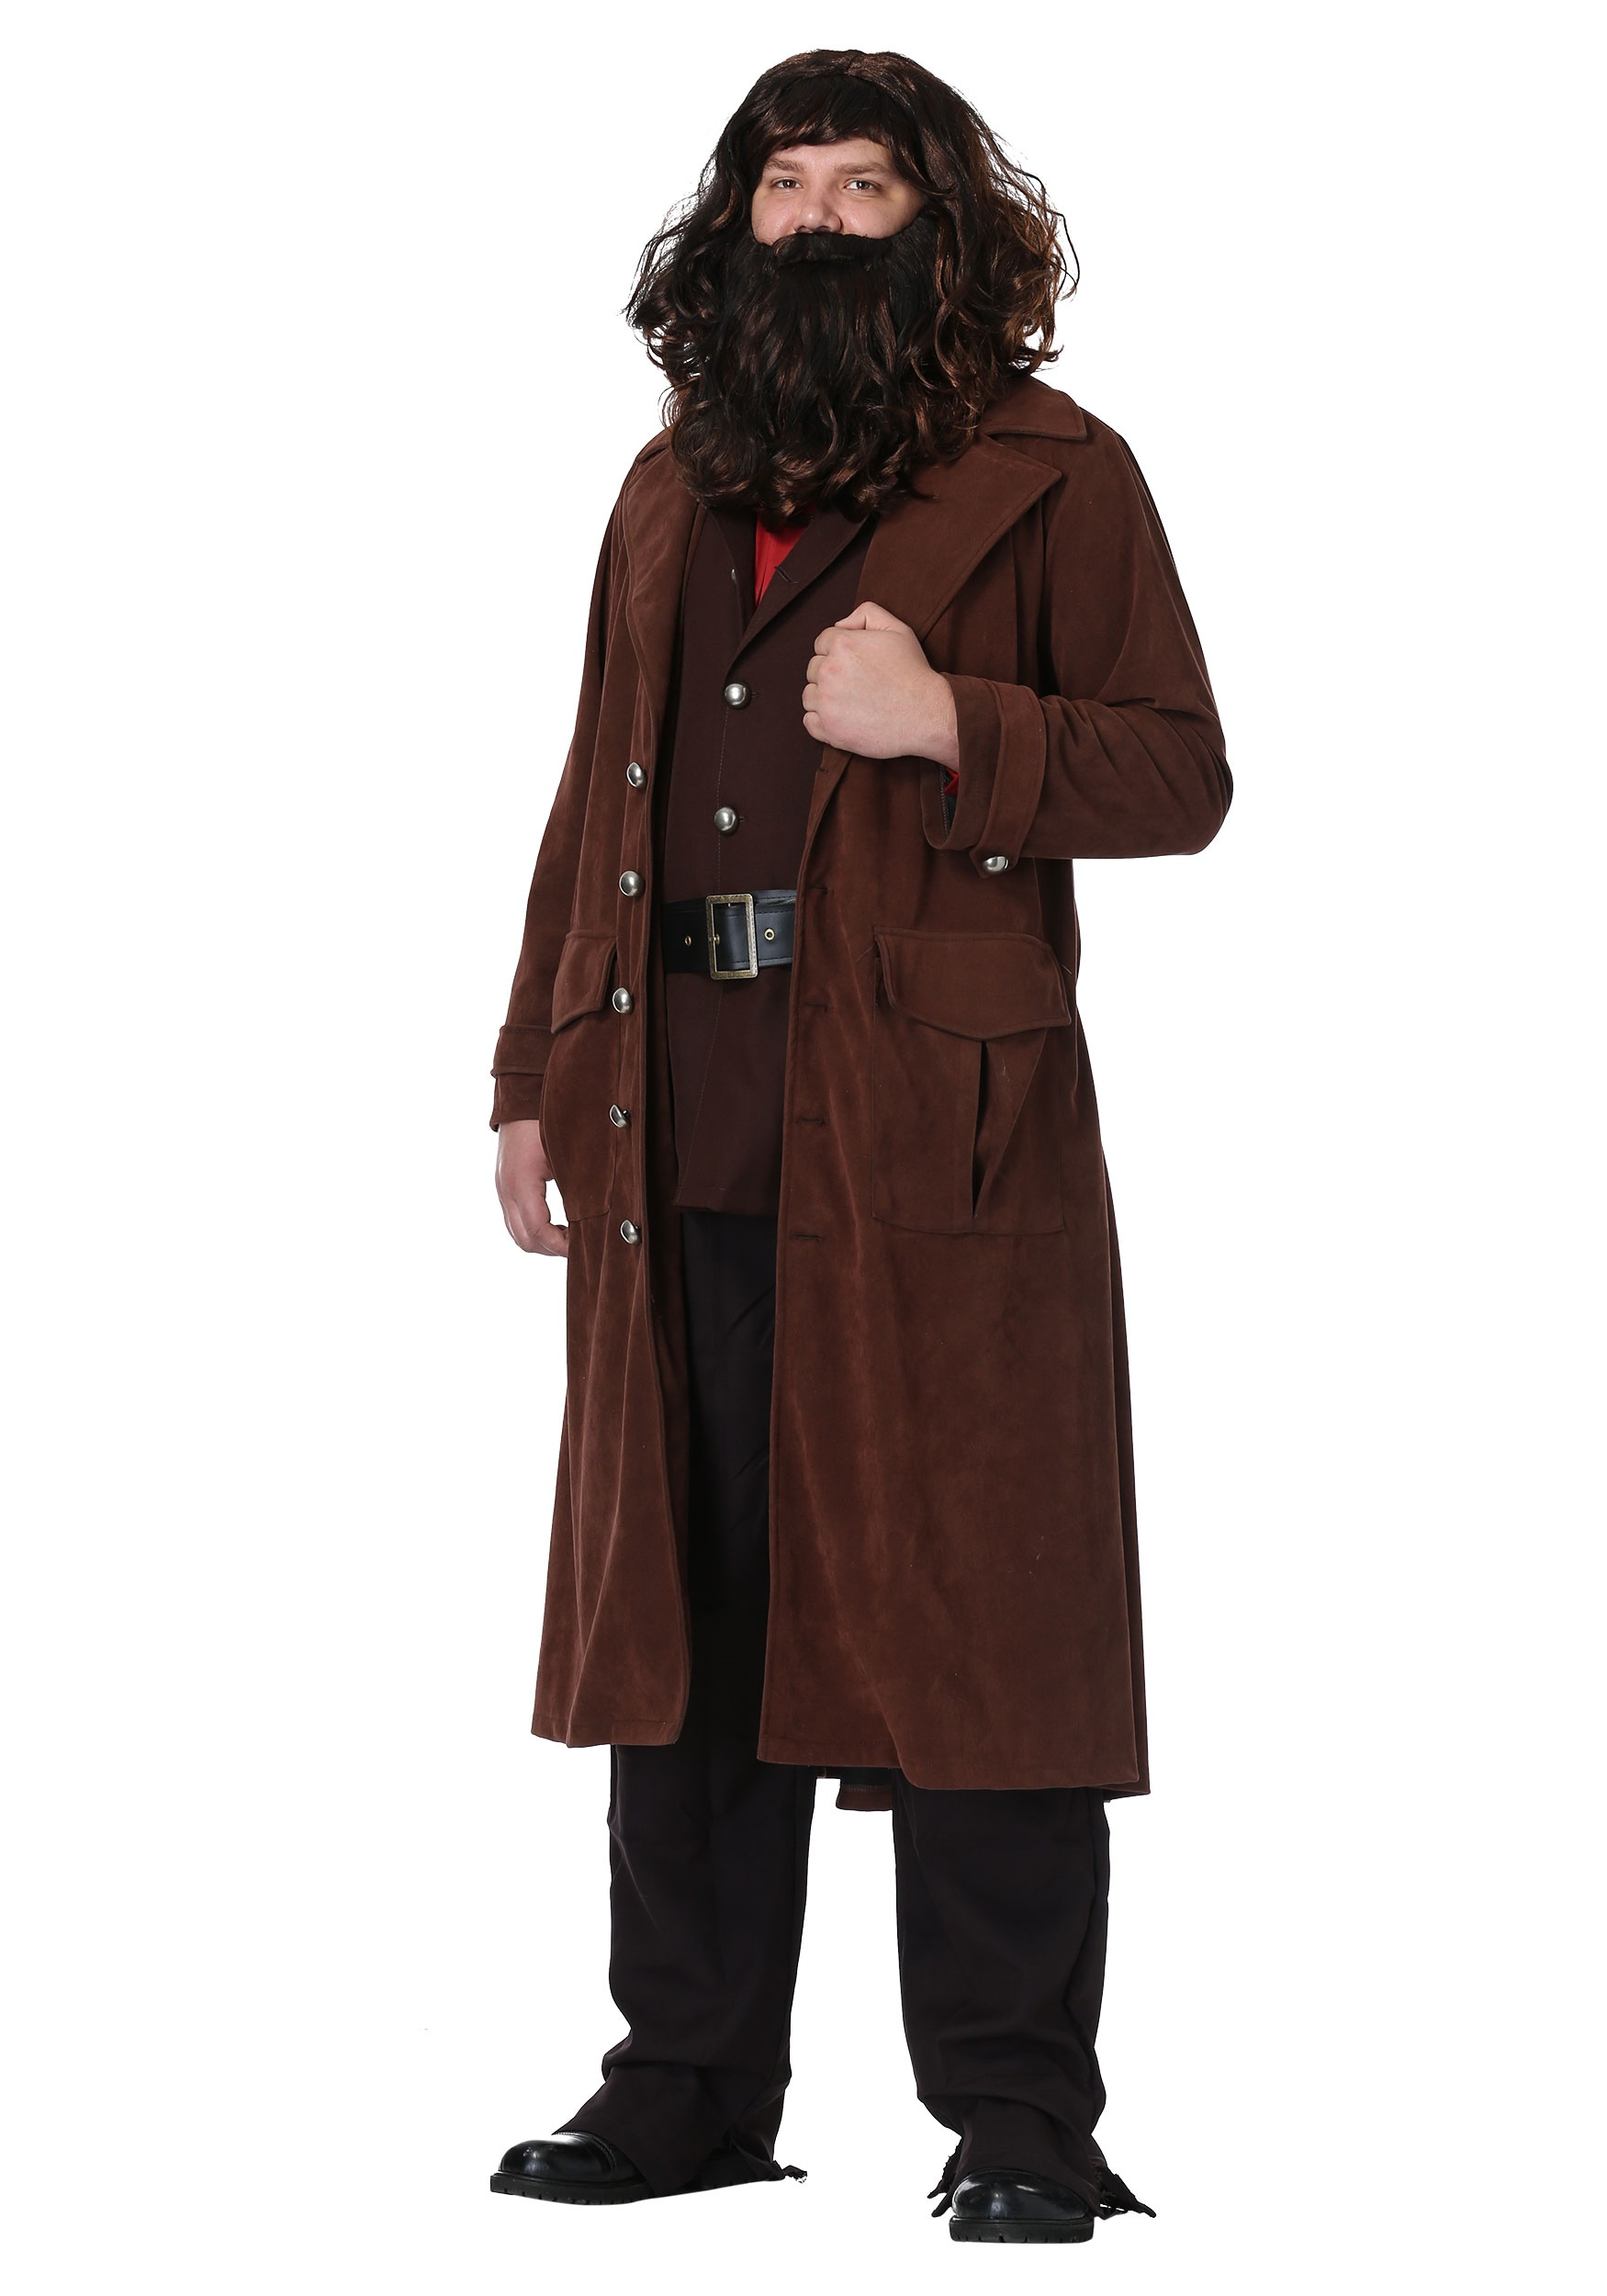 Delightful Harry Potter Deluxe Hagrid Plus Size Mens Costume